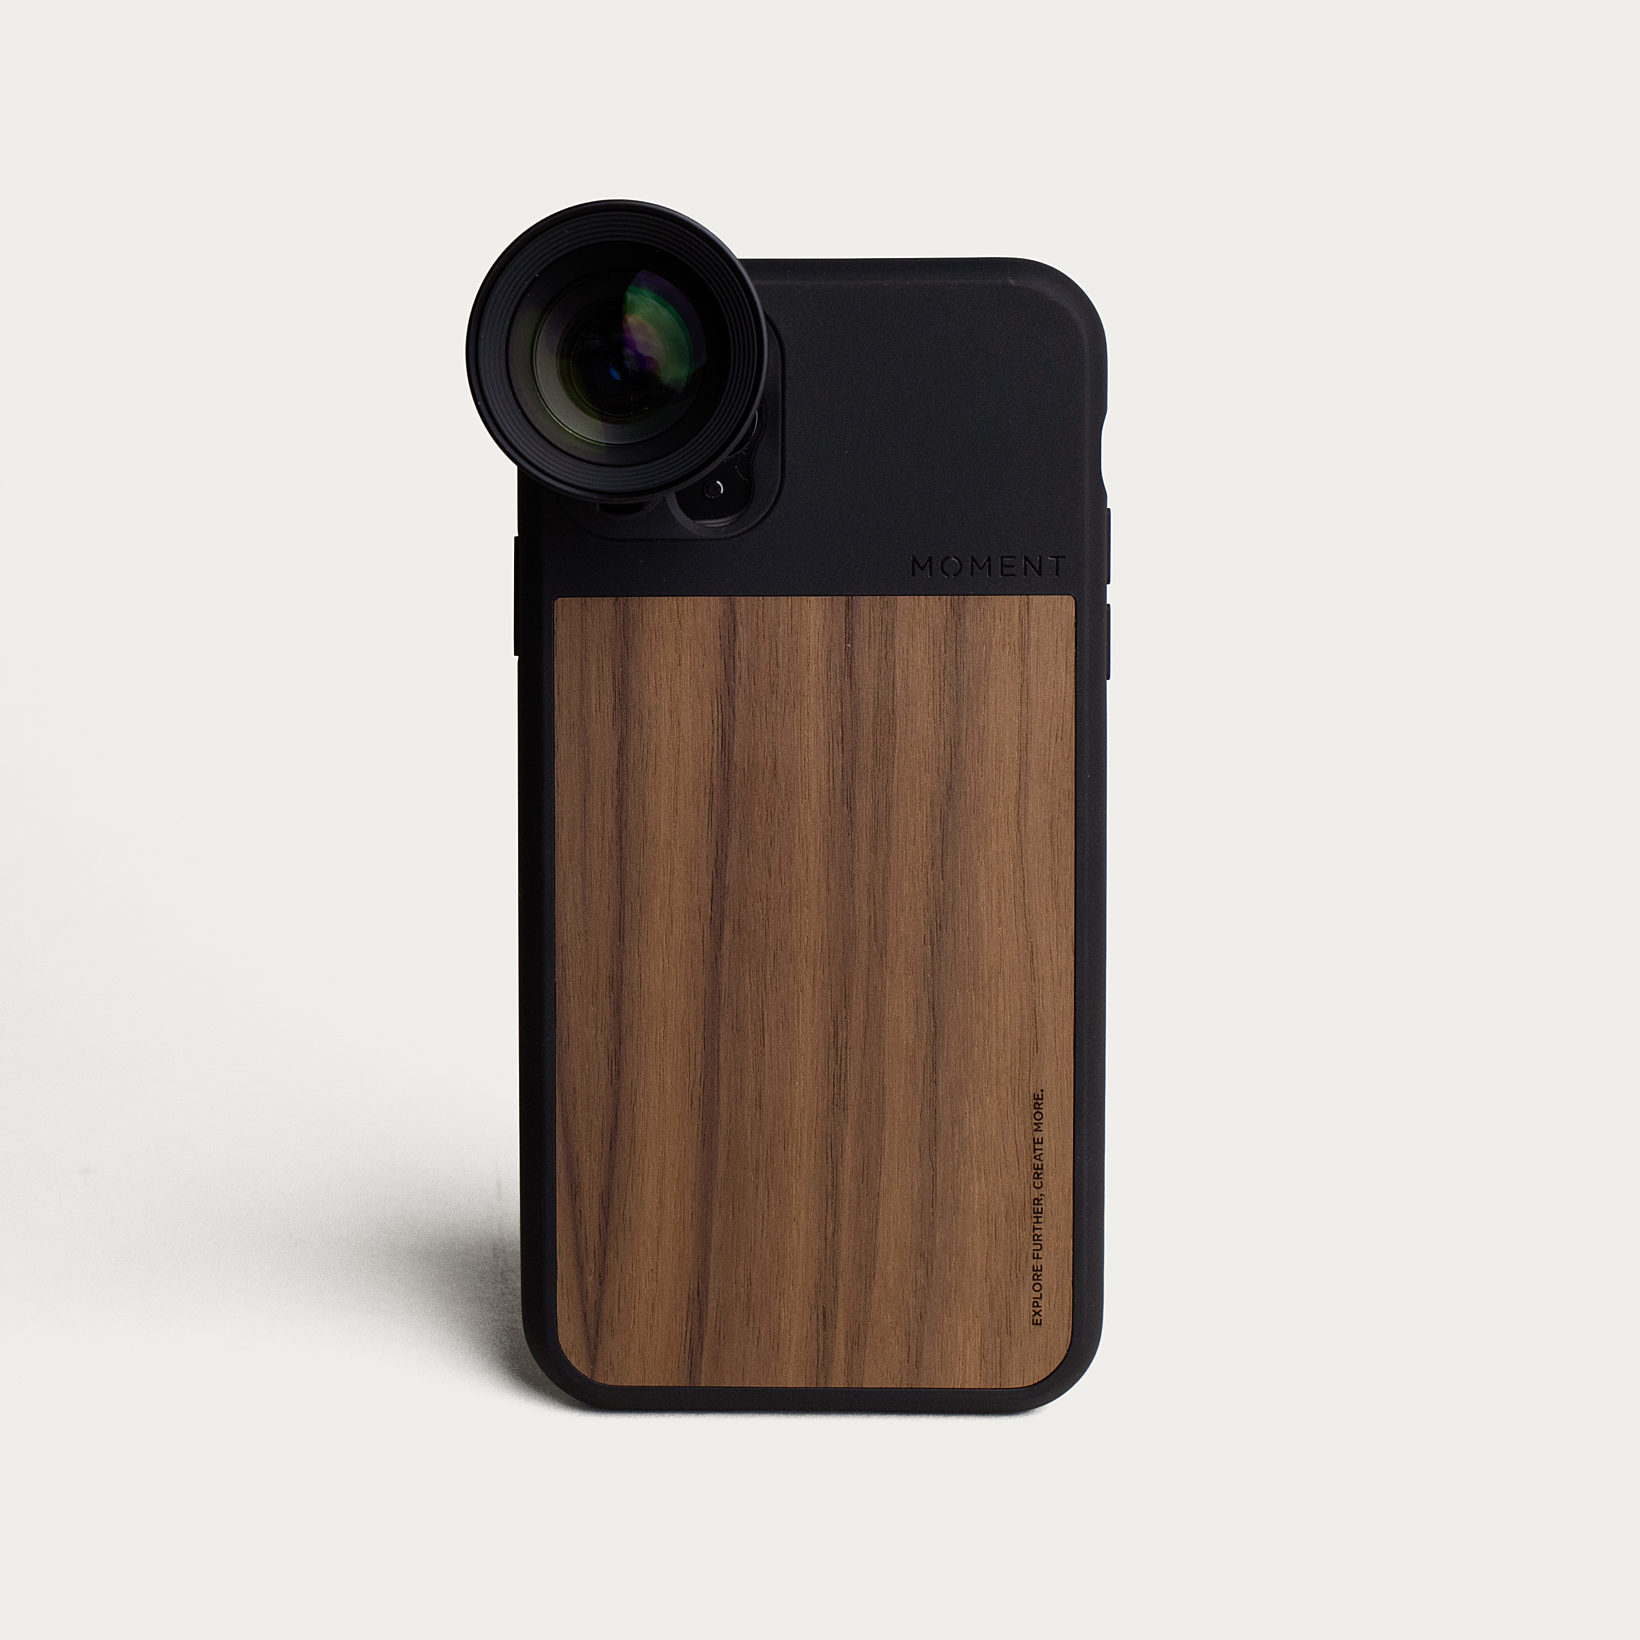 Each Moment of the Year iphone 11 case